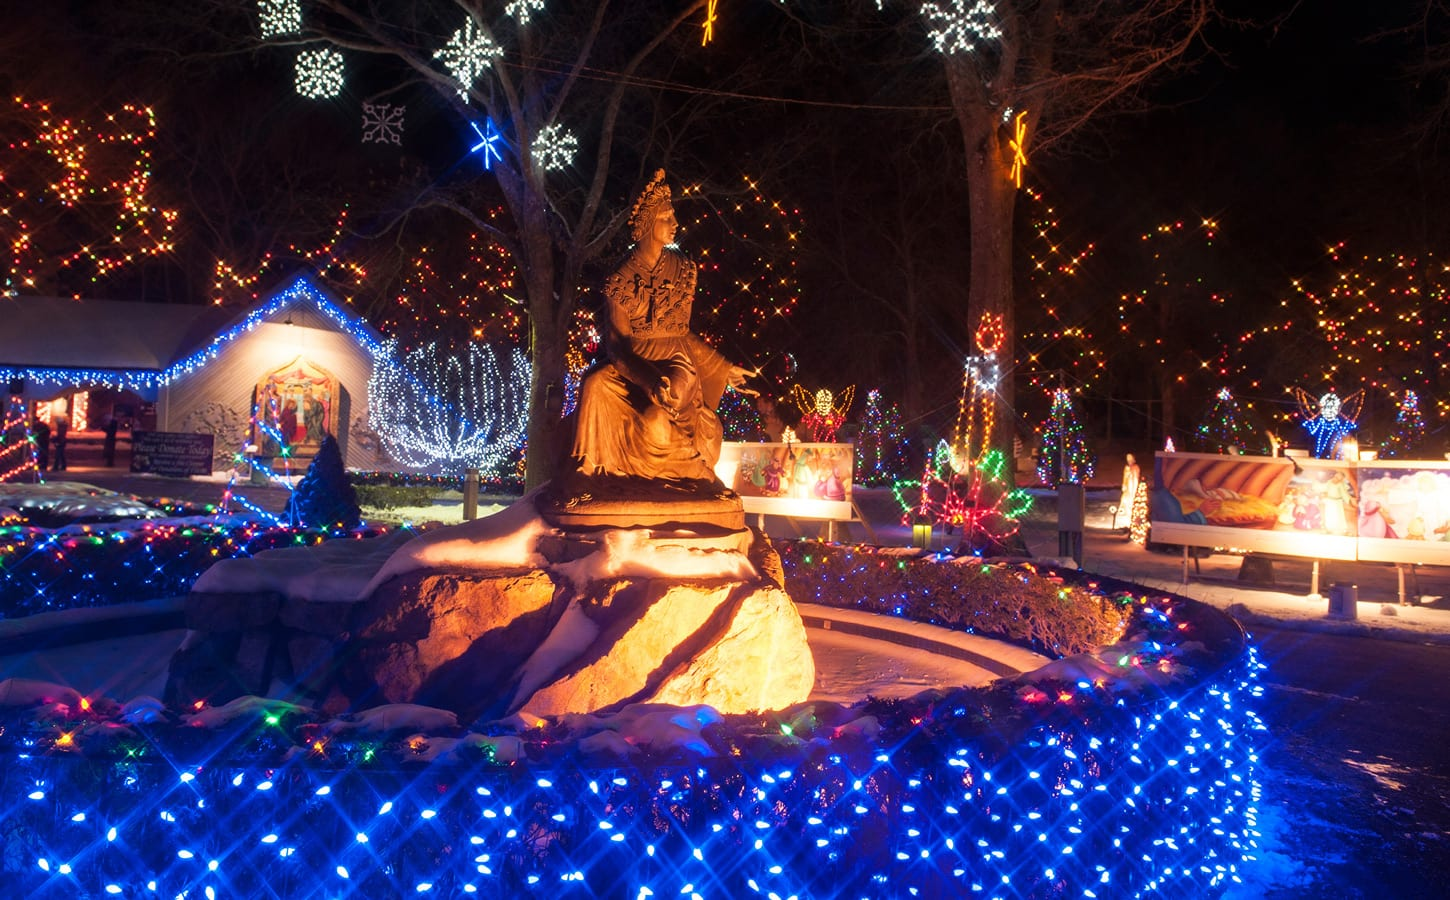 the national shrine of our lady of la salette located in attleboro ma has put on a festival of lights that has become a hallowed holiday tradition - When Did Christmas Become A National Holiday